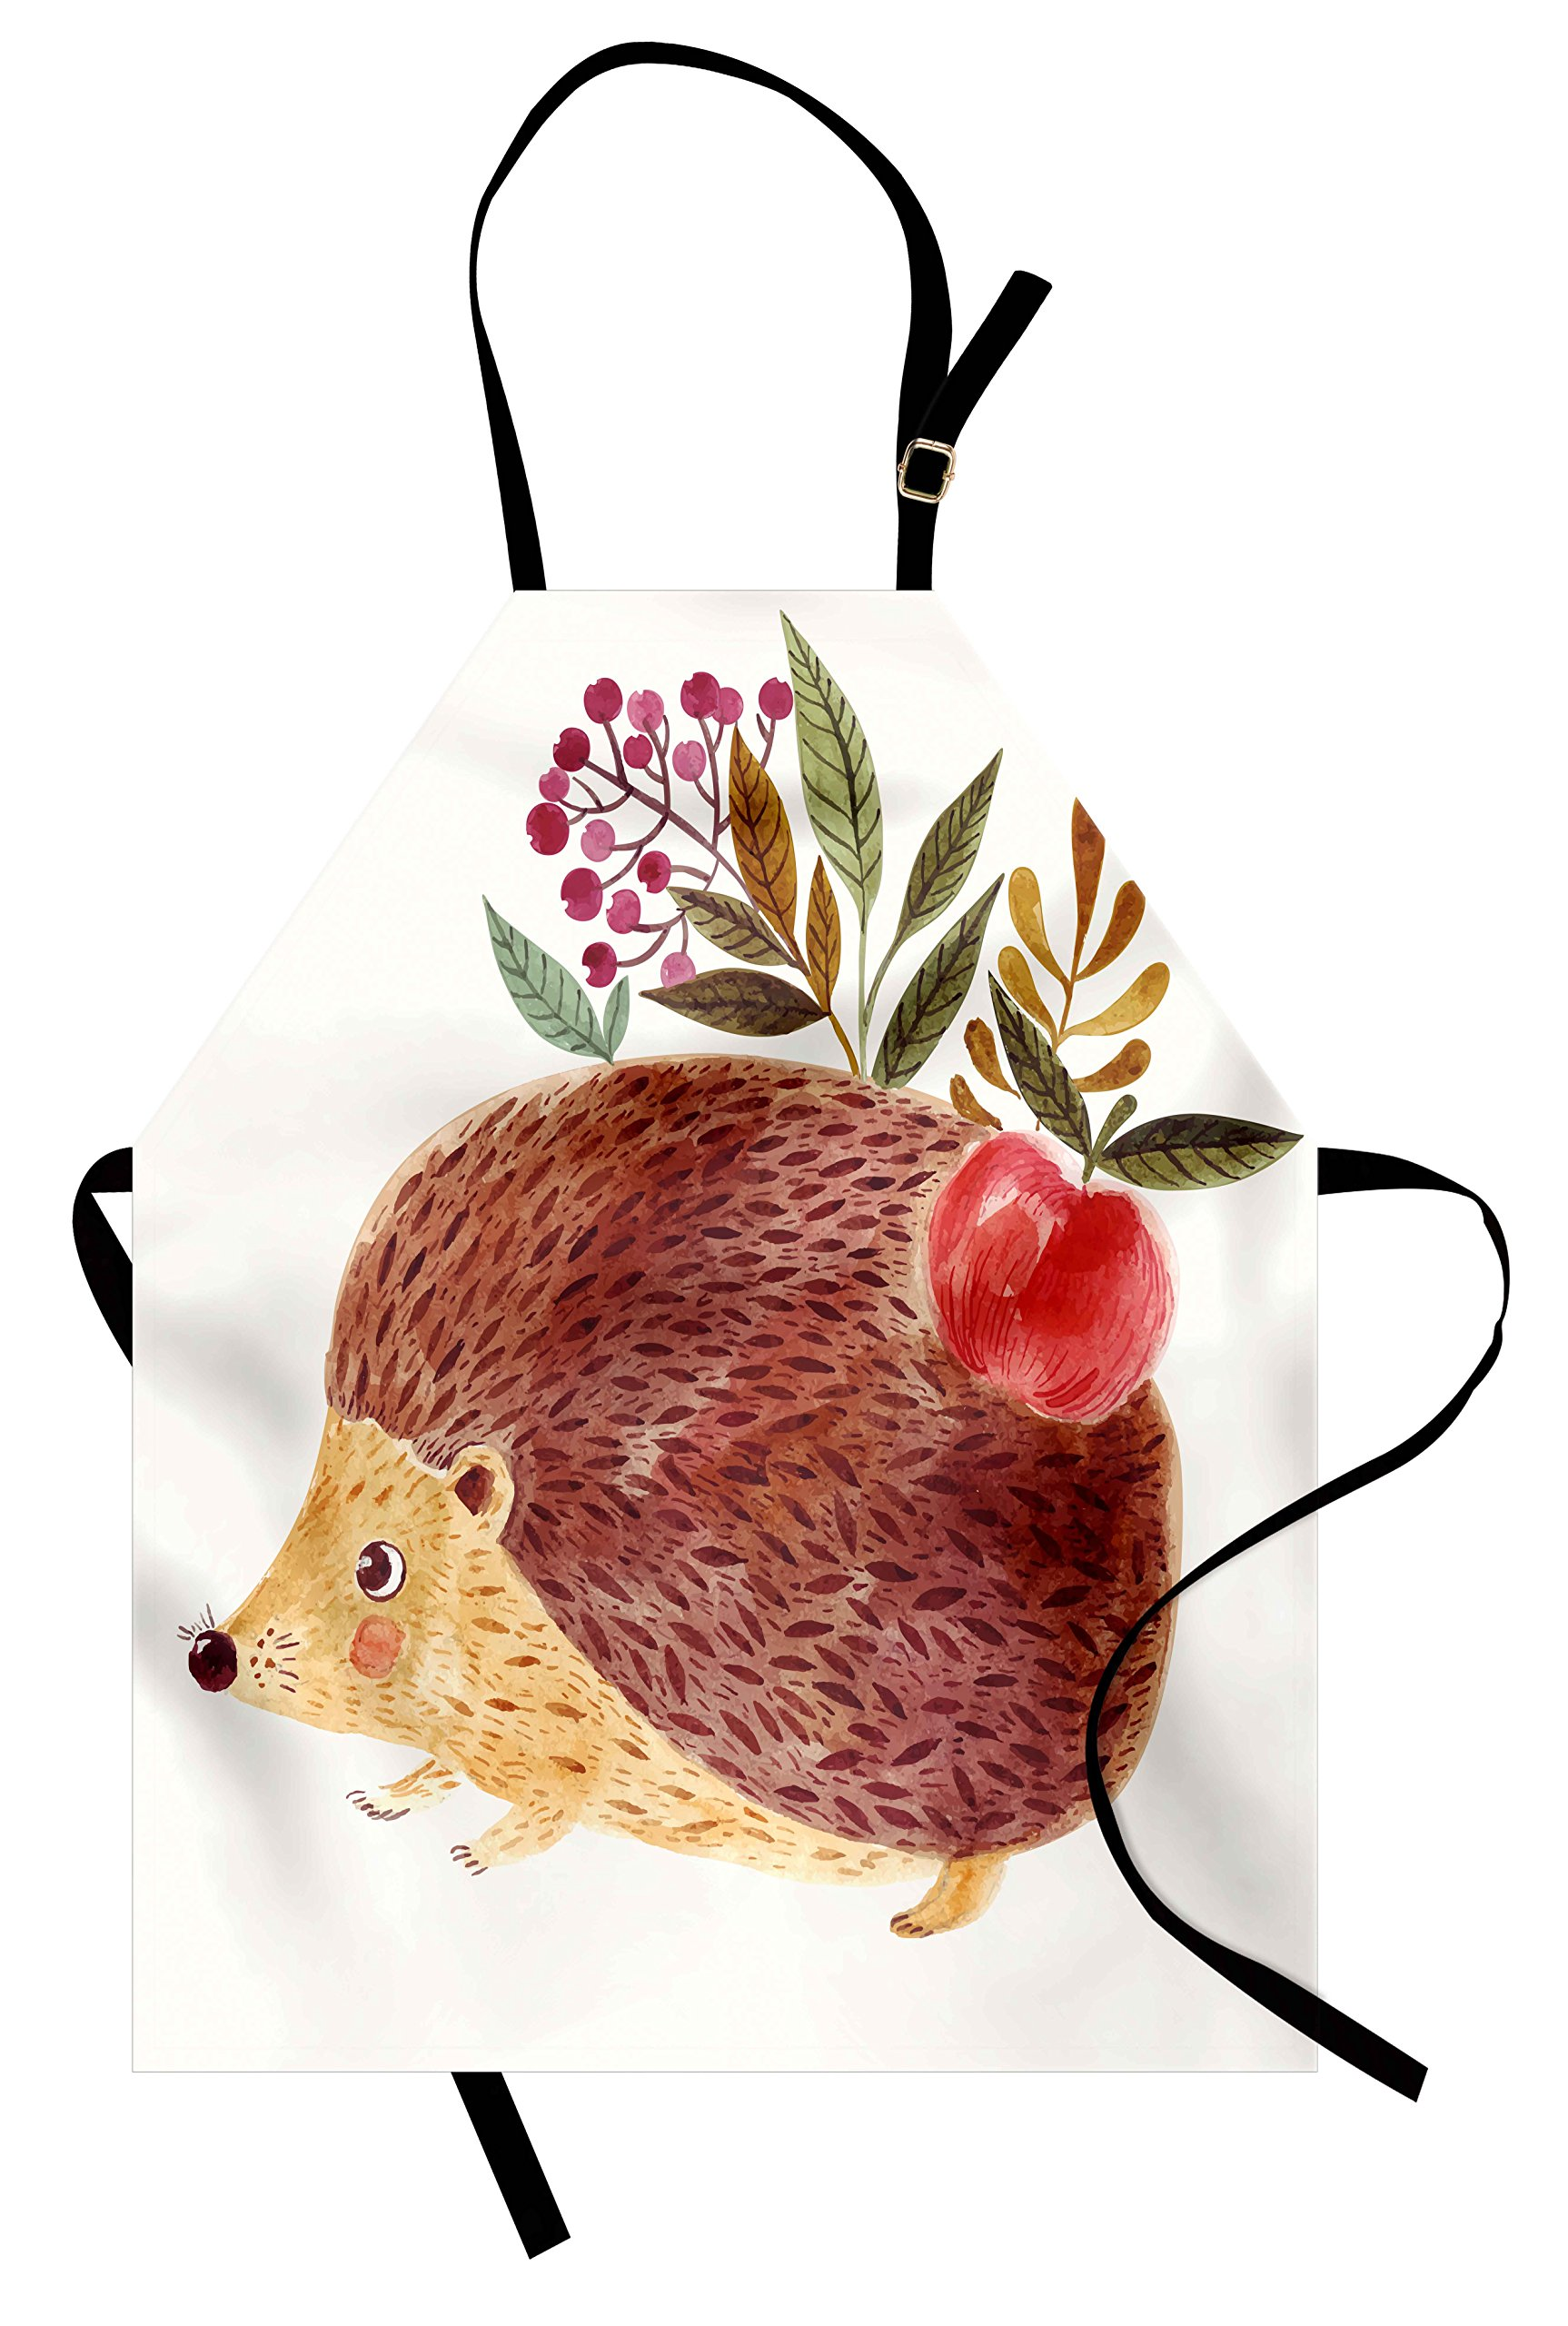 Ambesonne Animal Apron, Cute Hand Painted Illustration with Adorable Hedgehog with Flowers in Watercolors, Unisex Kitchen Bib Apron with Adjustable Neck for Cooking Baking Gardening, Multicolor